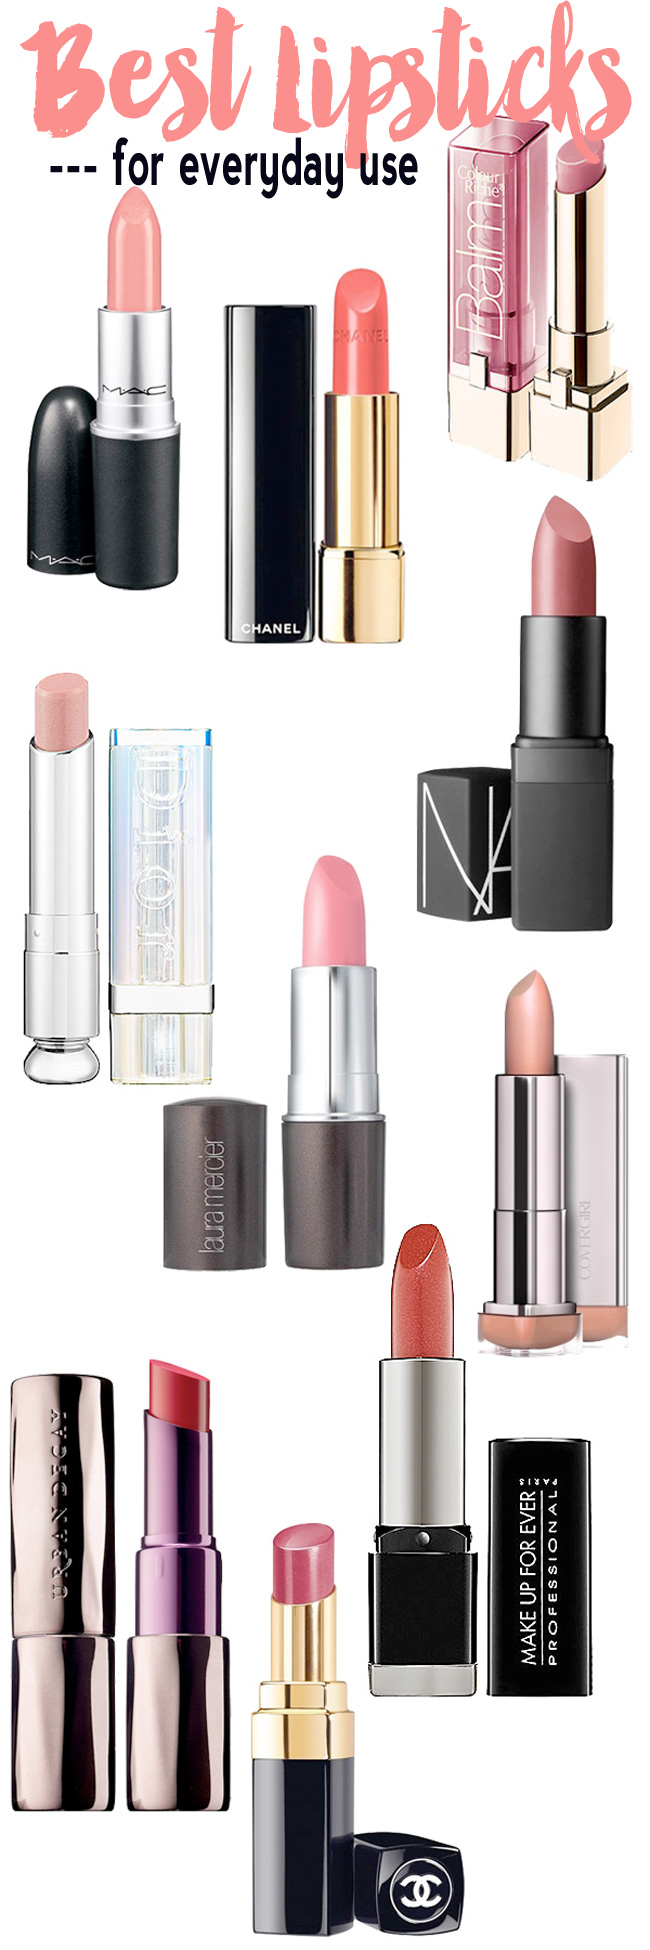 Best Lipsticks for Everyday Use